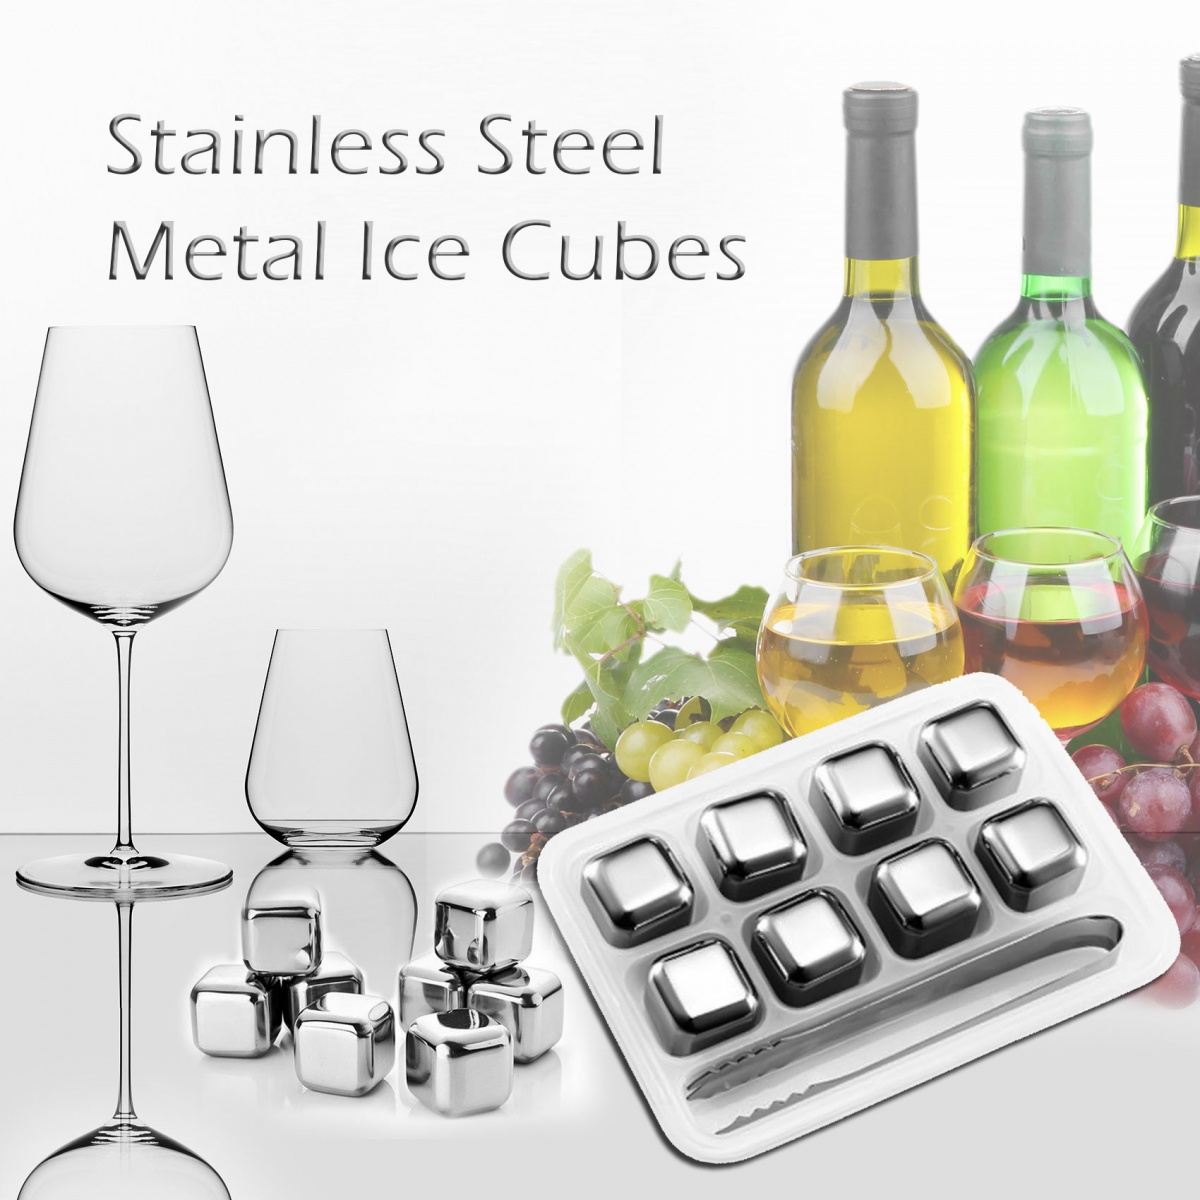 Stainless Steel Metal Ice Cubes - Silver